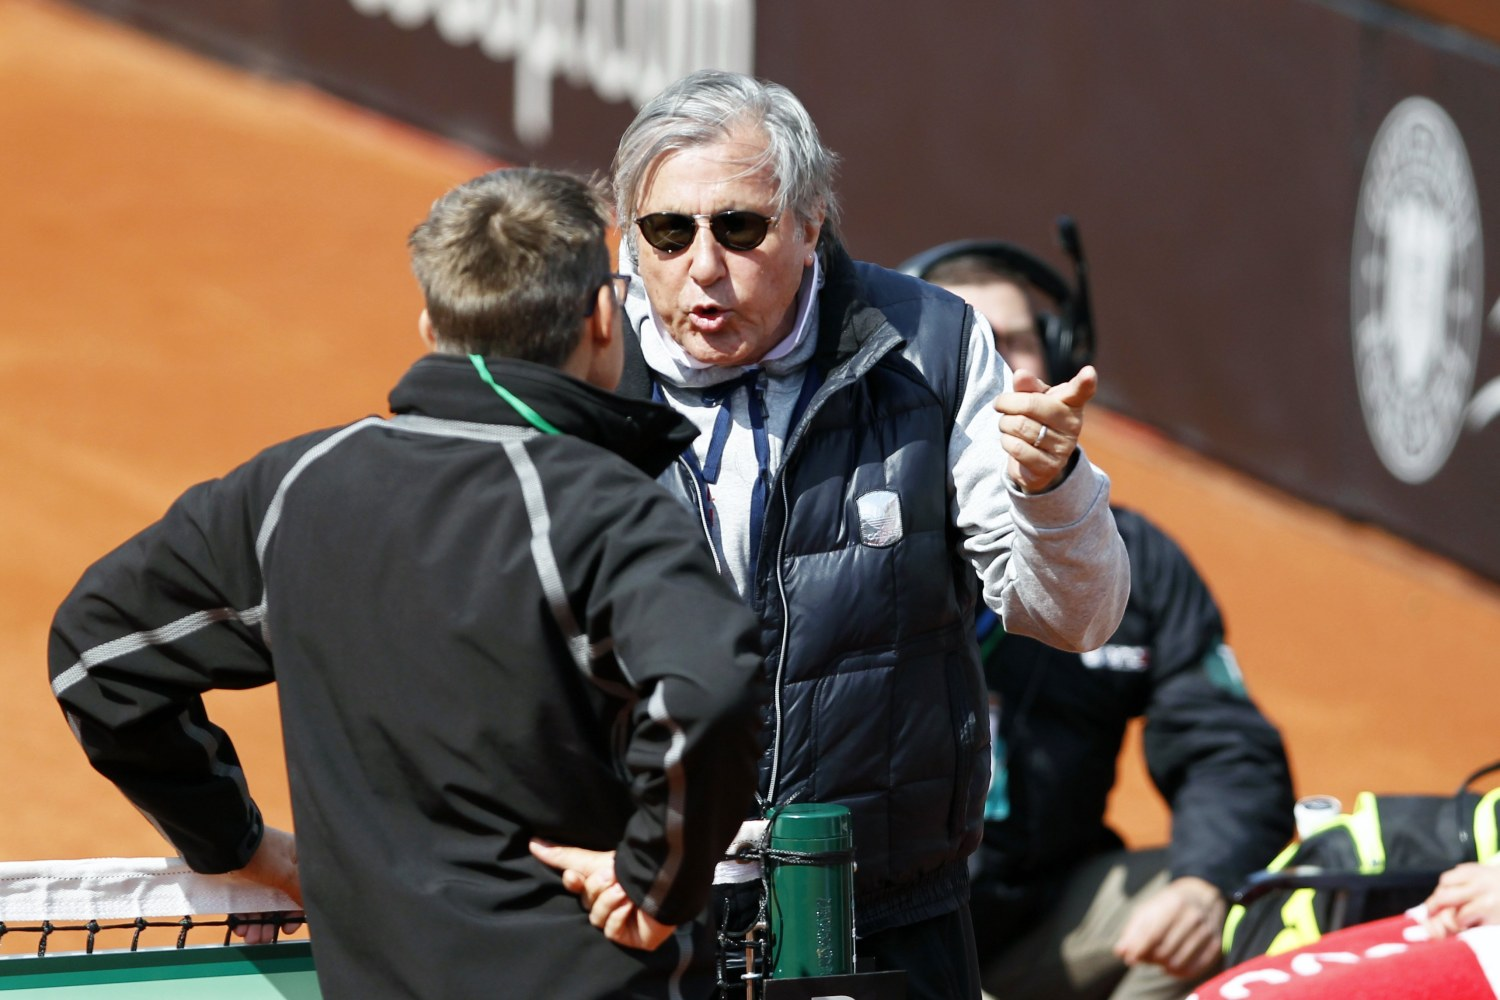 Romanian Tennis Great Nastase Kicked Out Of Fed Cup After 'Serious Misconduct'